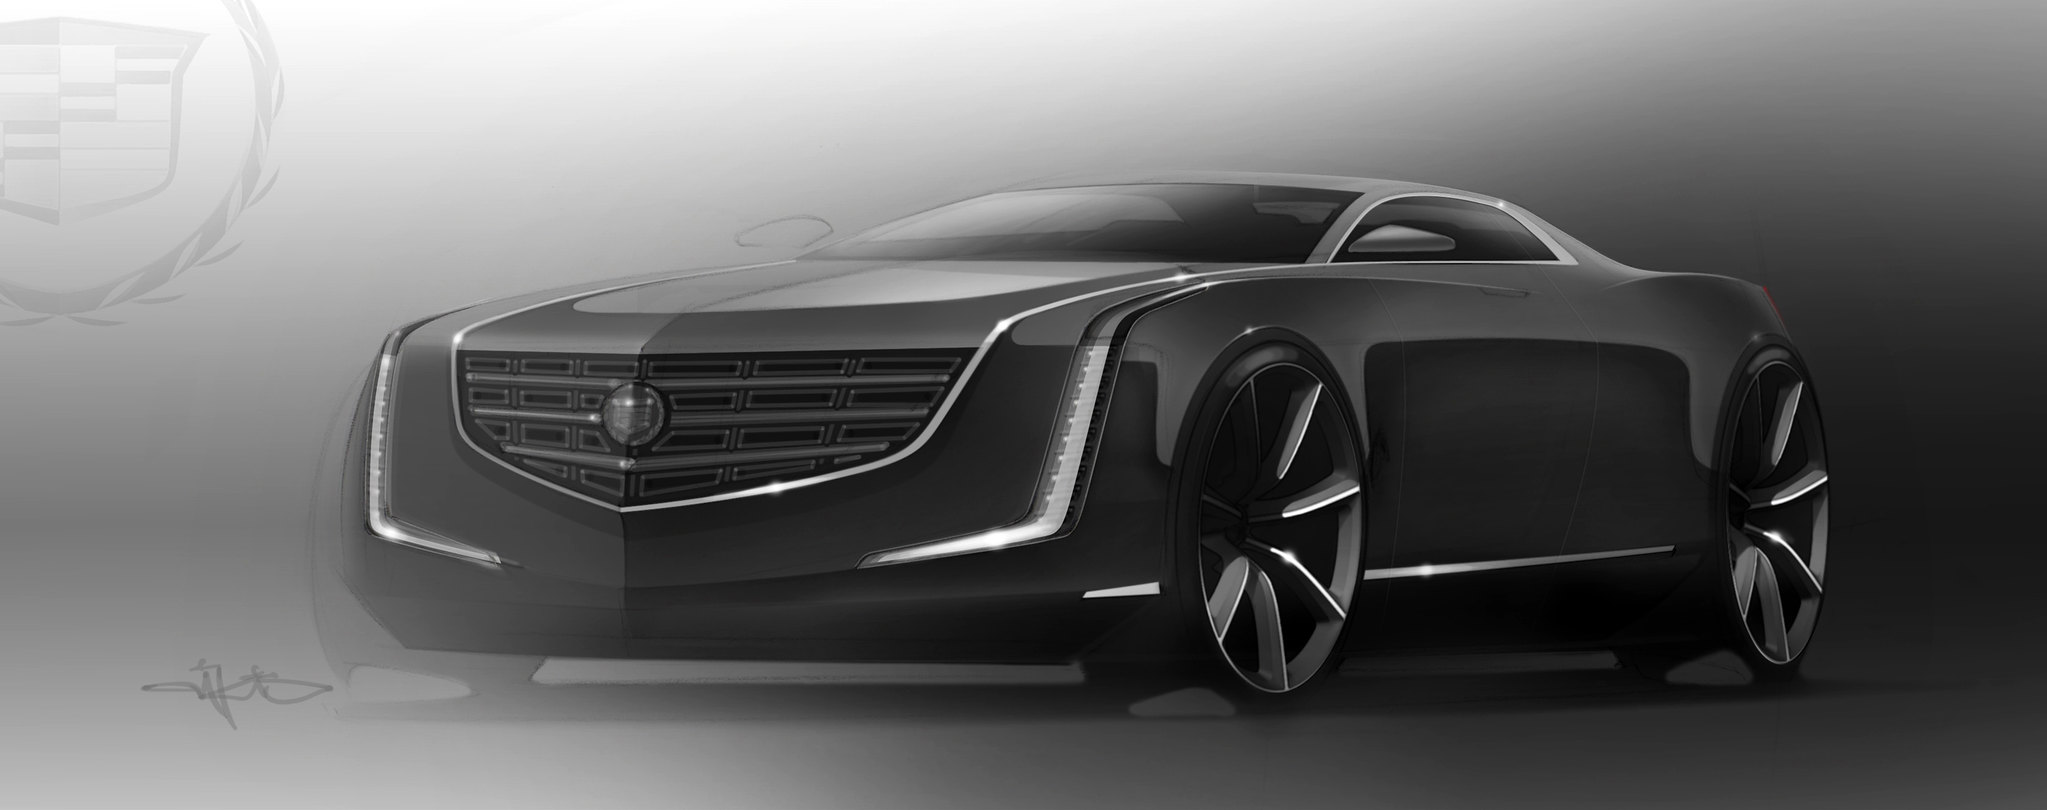 Cadillac to unveil new design concept